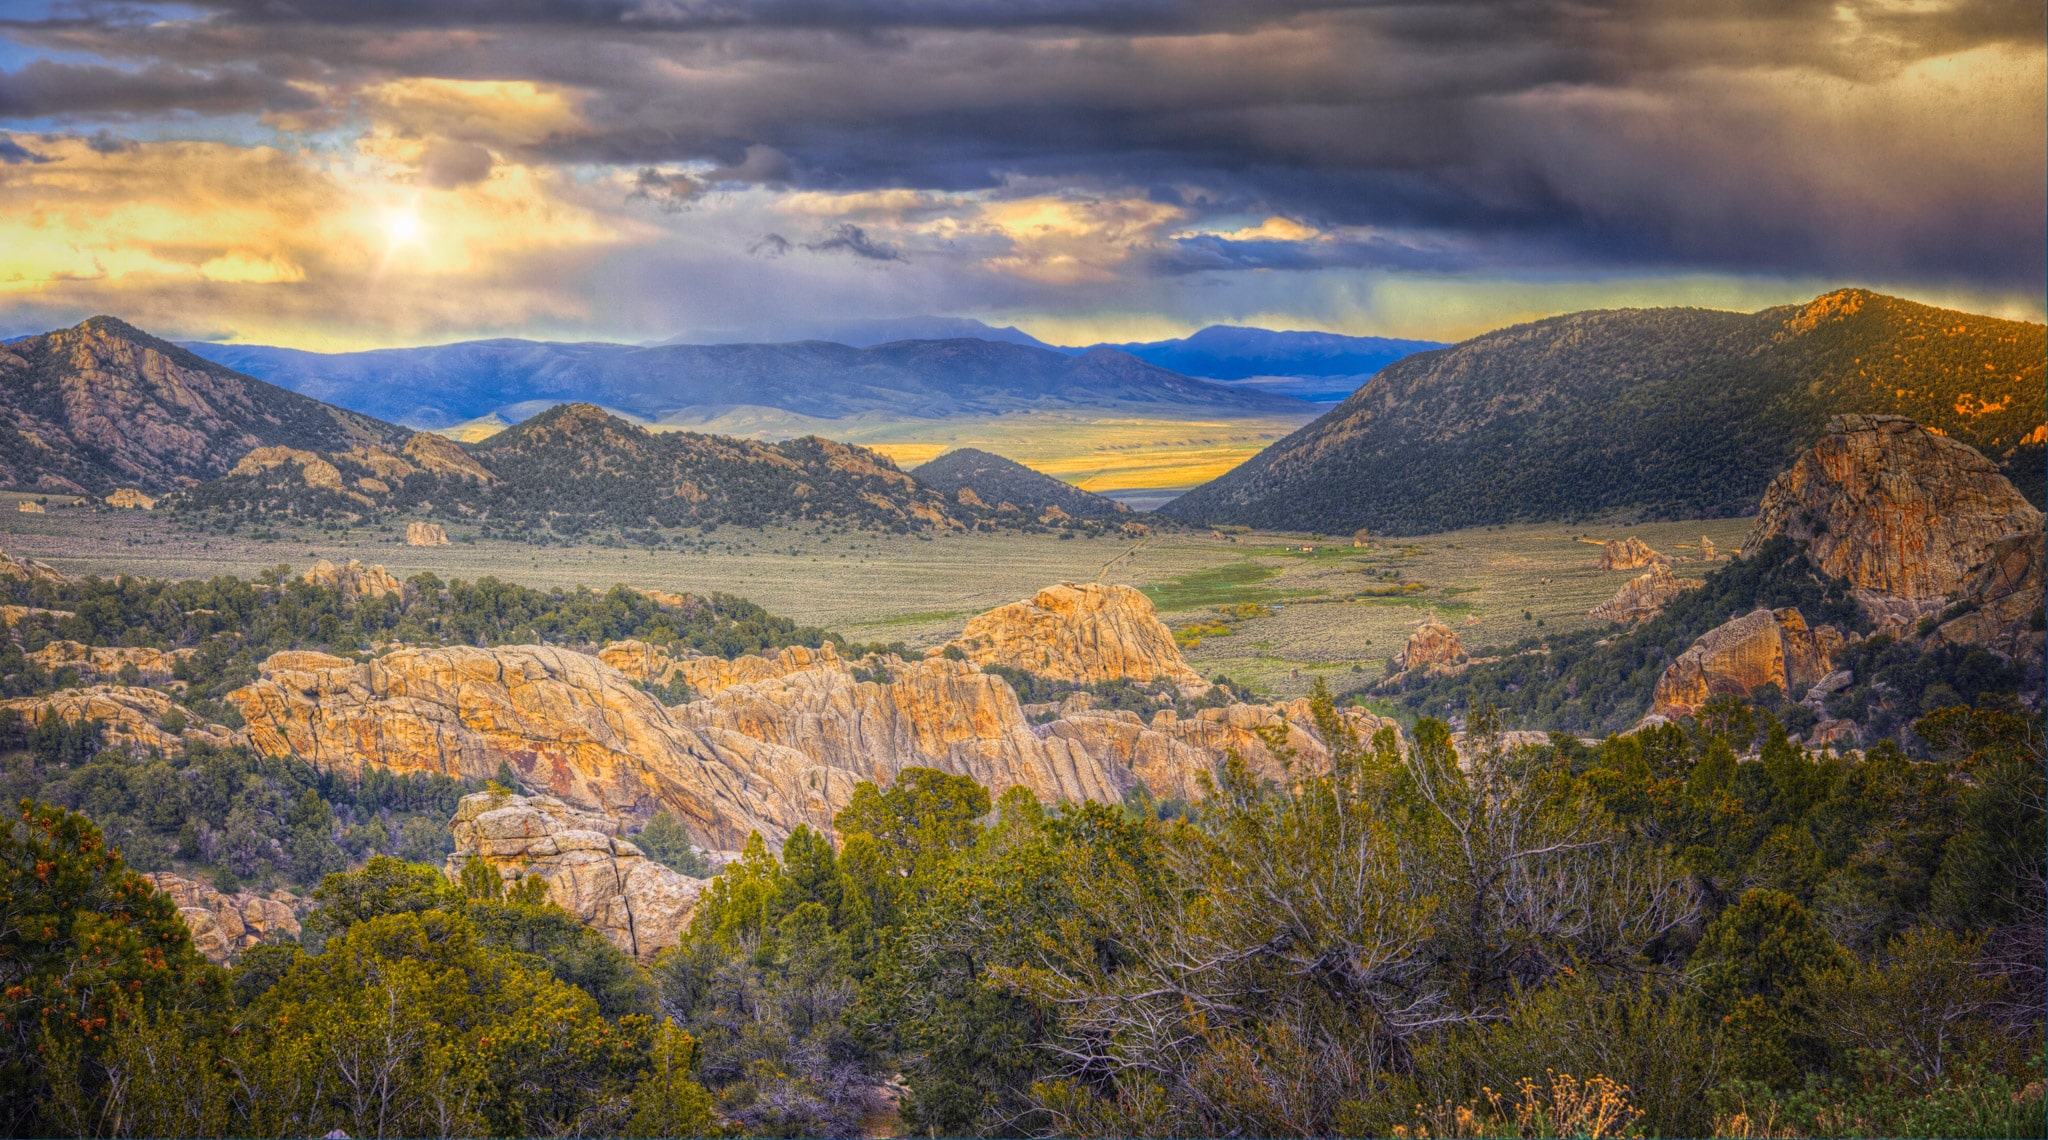 The sun shows through retreating snow clouds in City of Rocks National Reserve at sunset, near Almo, Idaho.